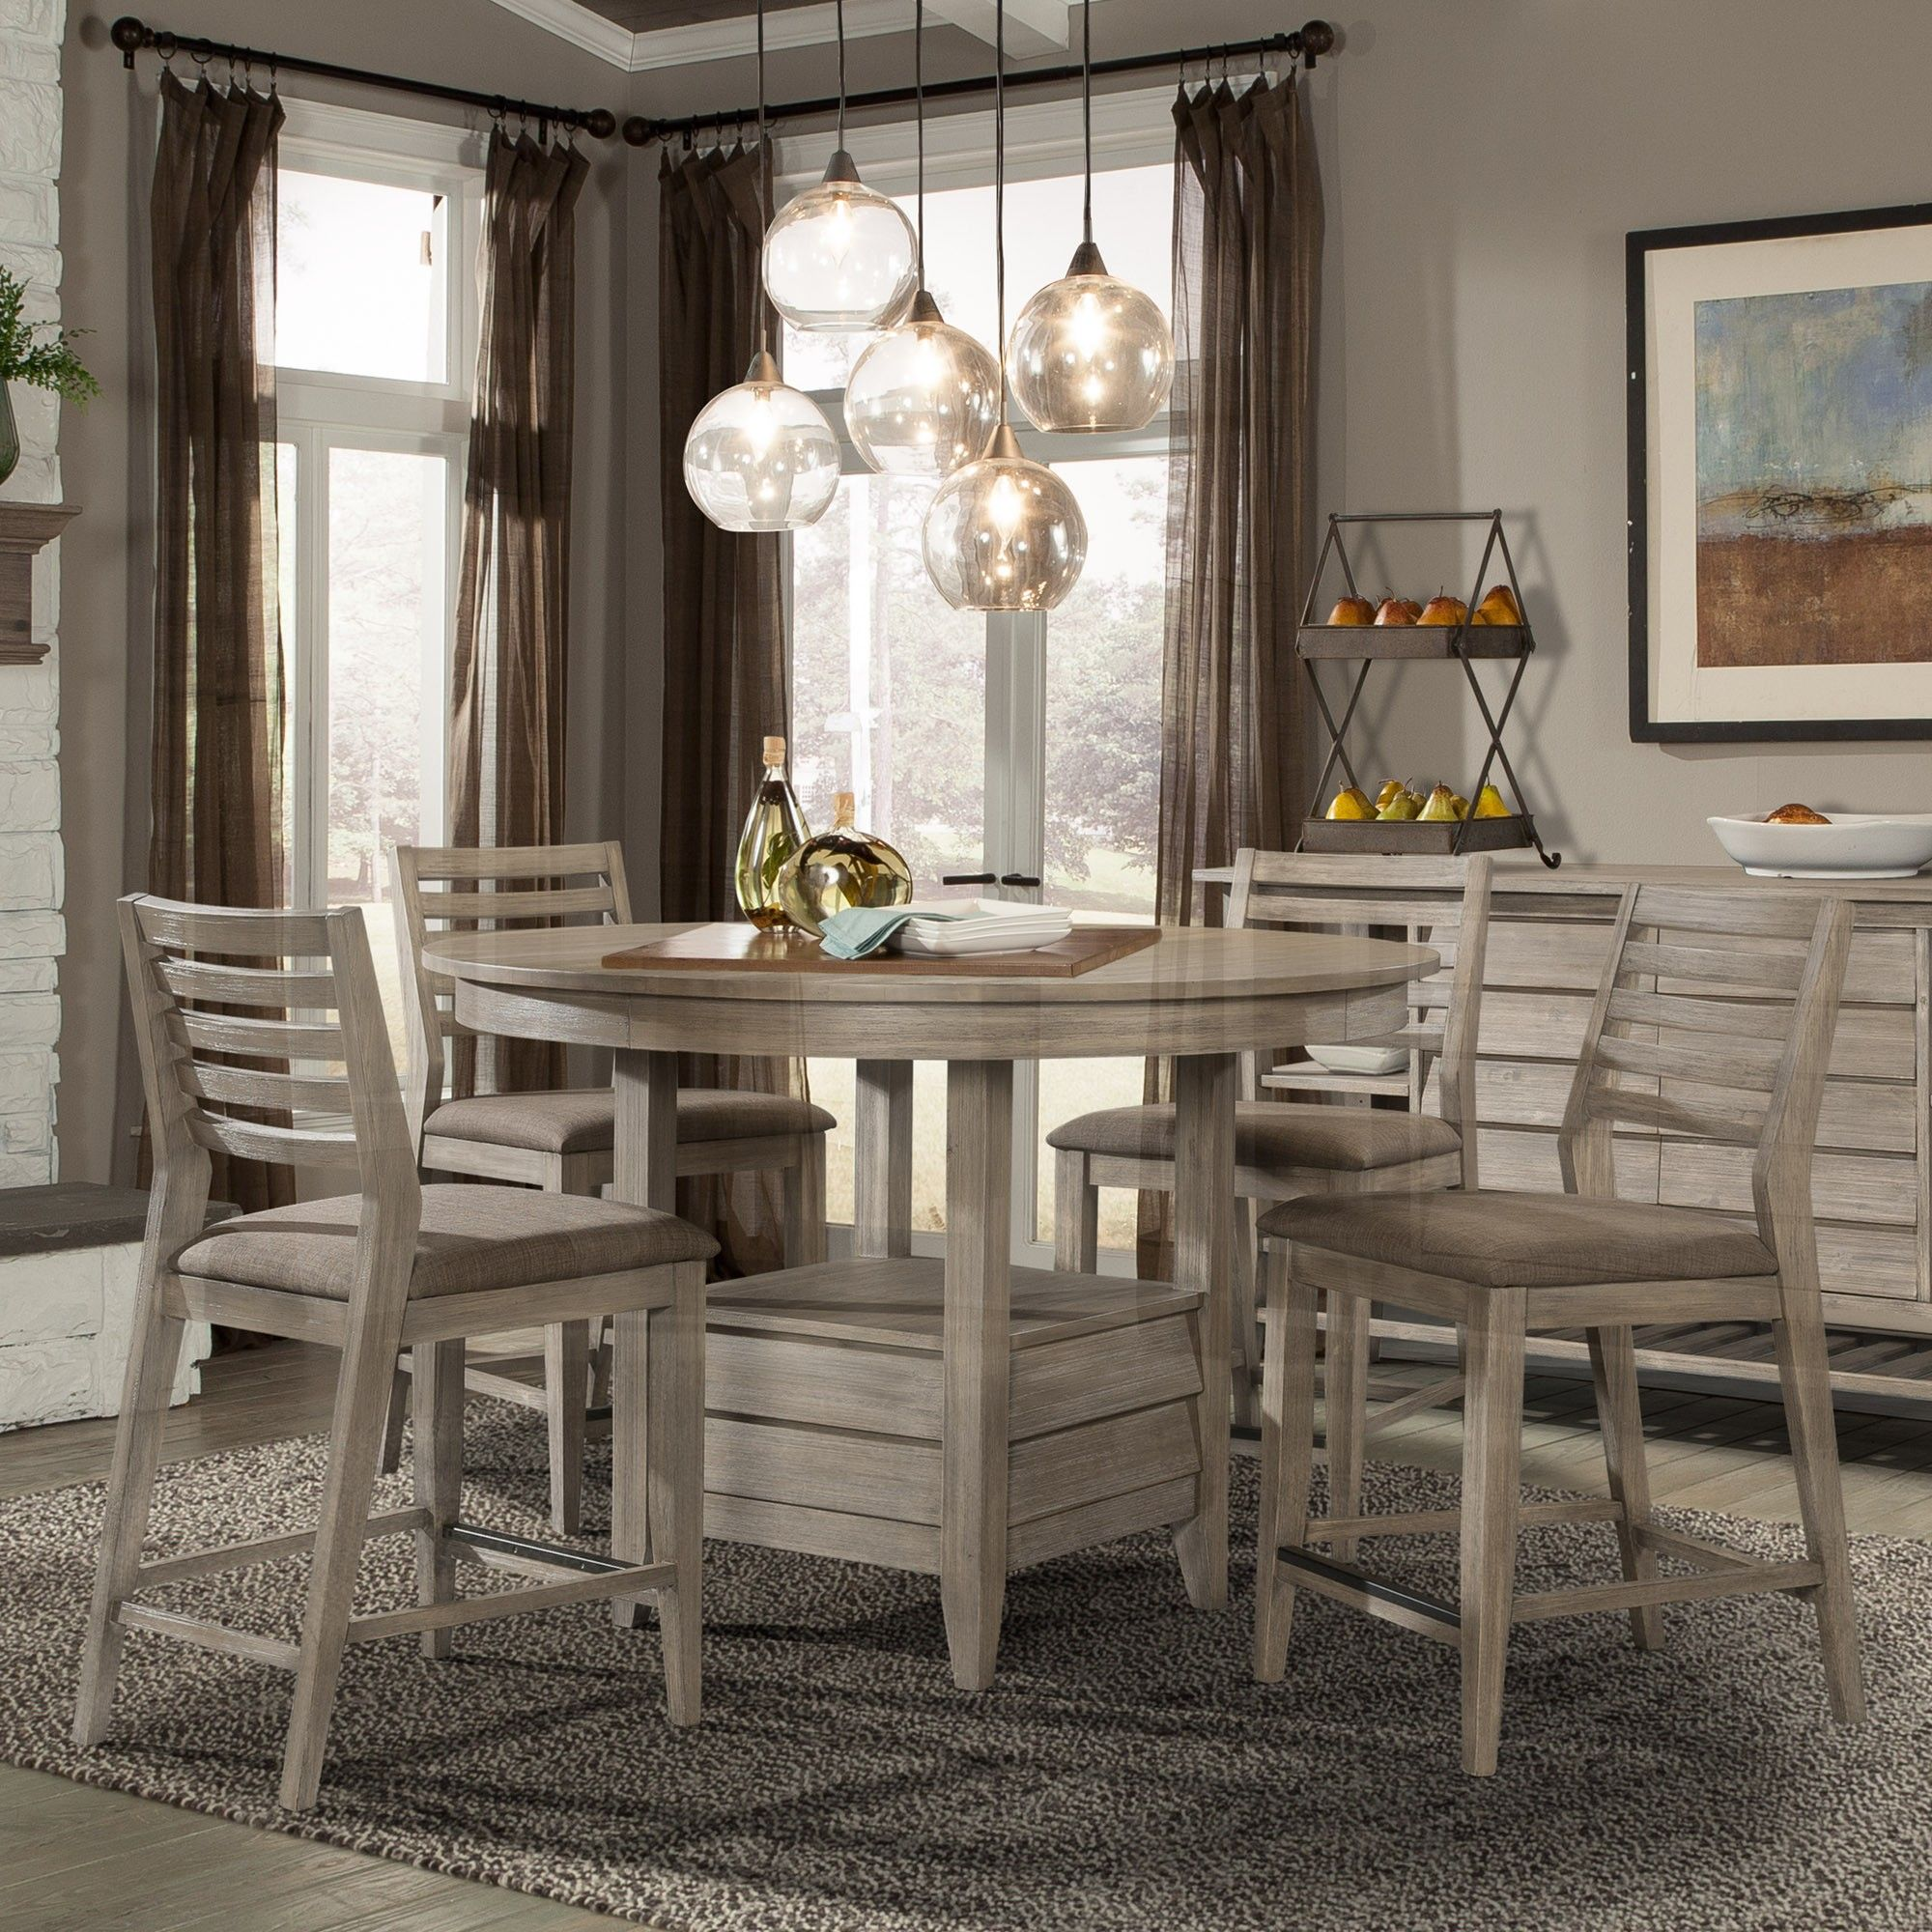 Height Dining Room Table Collection Impressive Corliss Landing Dining Room Collectioncresent Fine Furniture . 2017